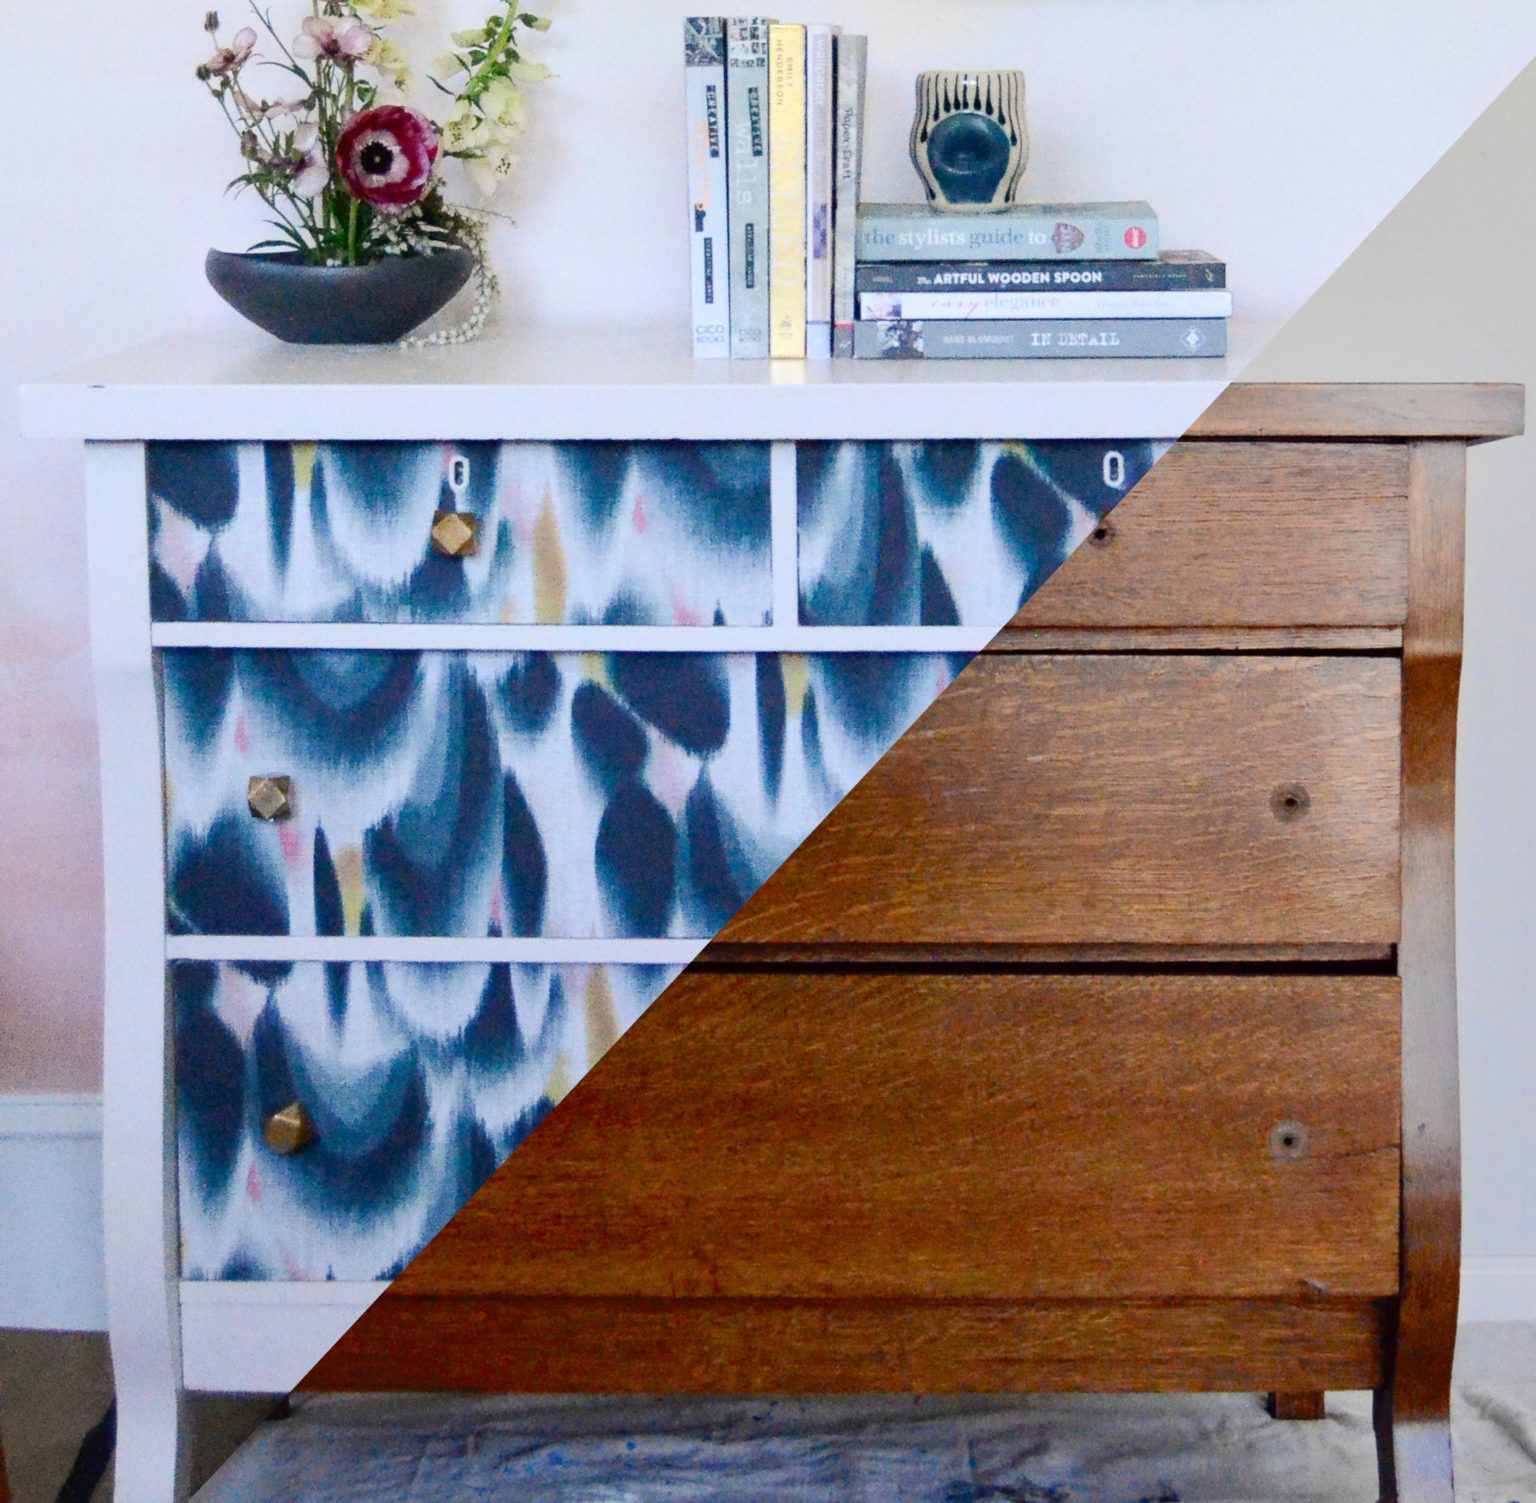 How To Refresh A Dresser With Wallpaper Wallpaper Dresser Wallpaper Drawers Wallpaper Furniture